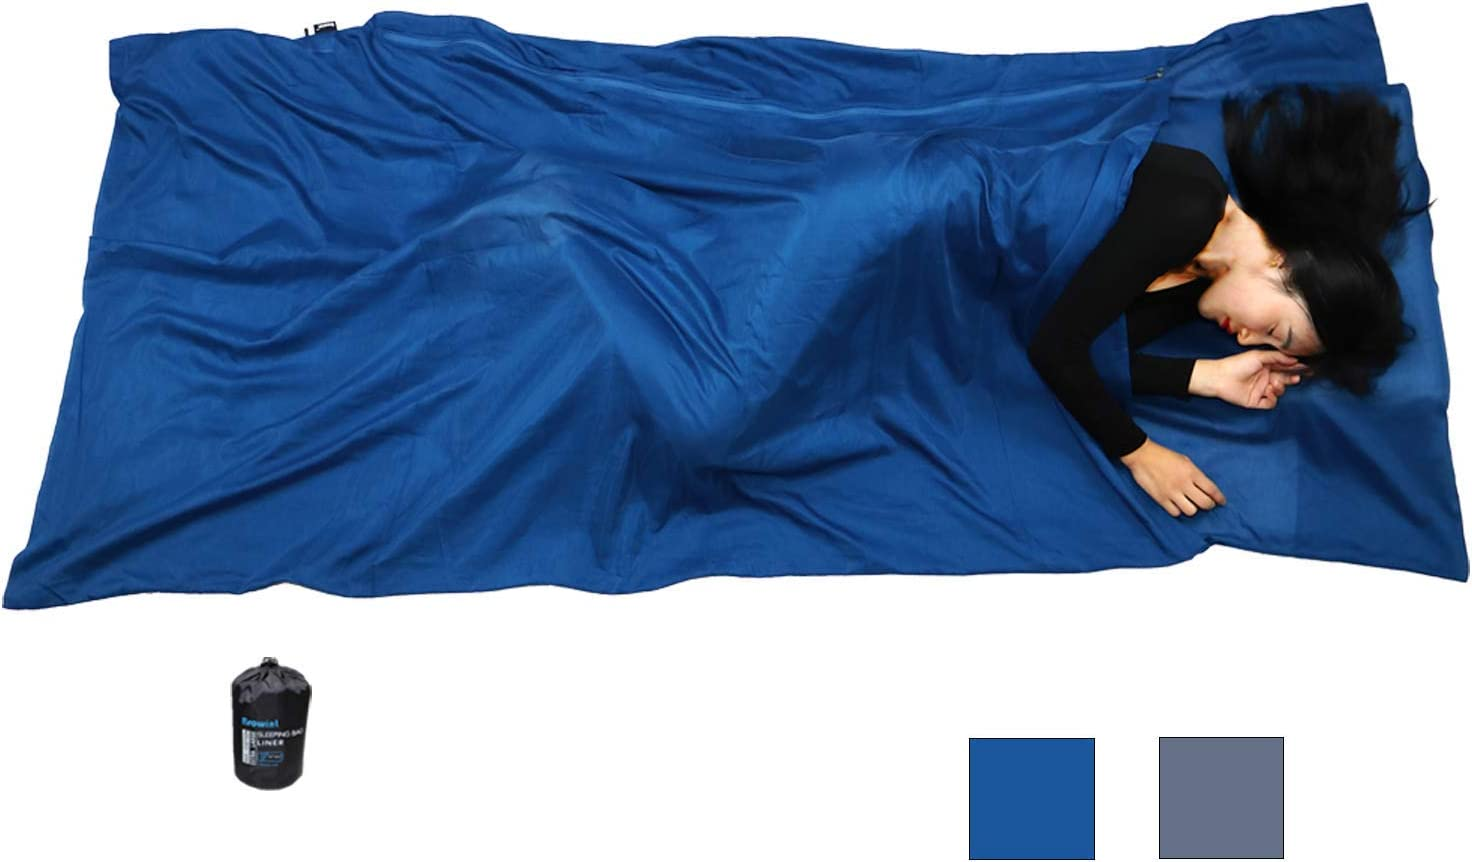 87x43 Extra Wide Sleep Sack for Hotels Traveler Rectangular with Pillow Pocket Browint Silk//Cotton Travel Sheet with Double Zippers Lightweight Sleeping Bag Liner for Camping